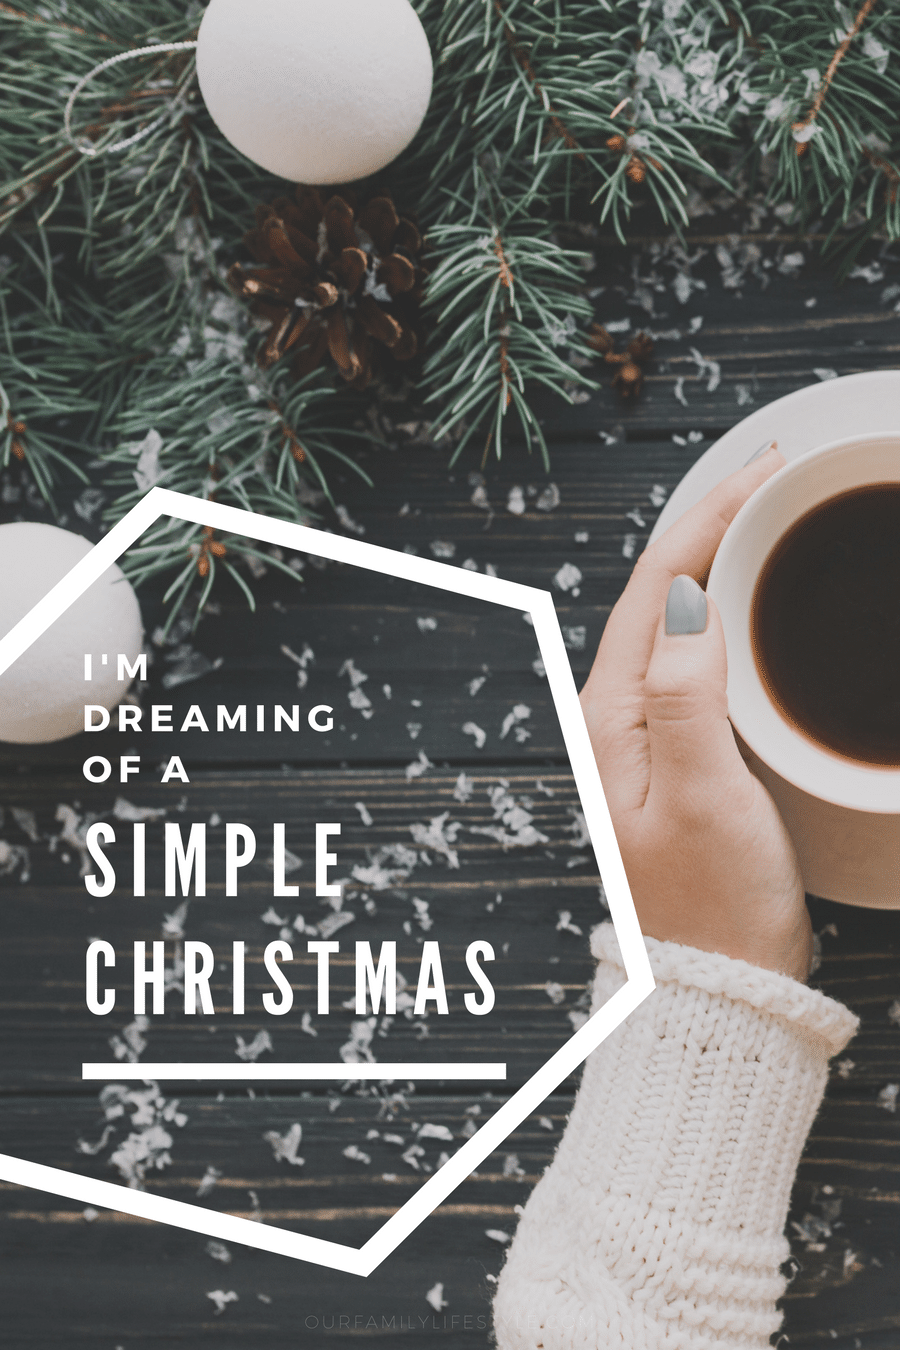 I'm dreaming of a simple Christmas